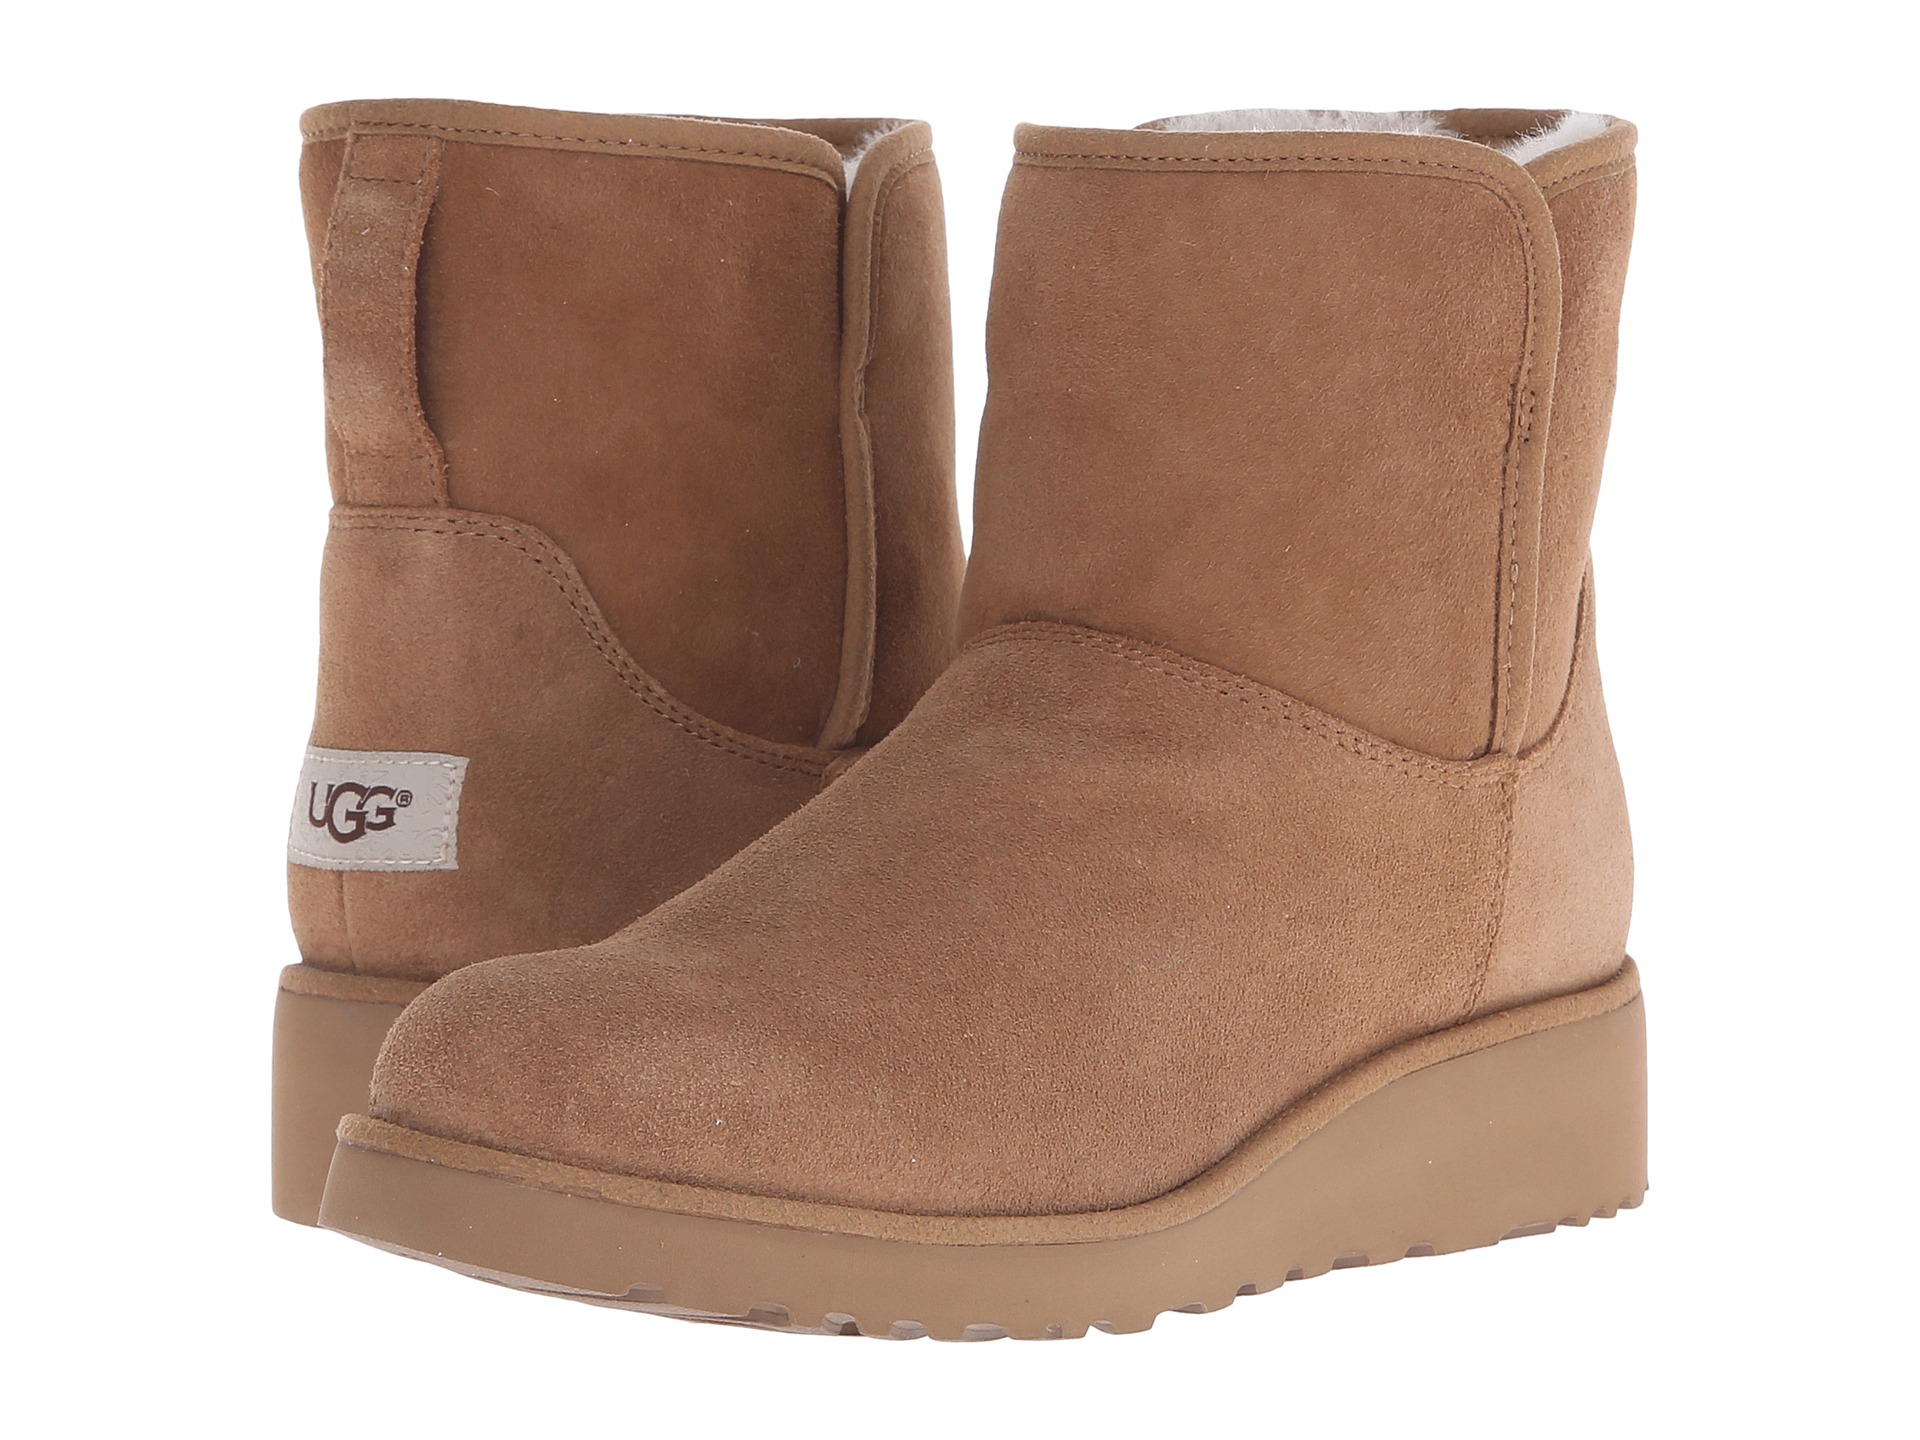 abcacd61a47 Ugg Boots Zappo Gift Cards For Sale | MIT Hillel